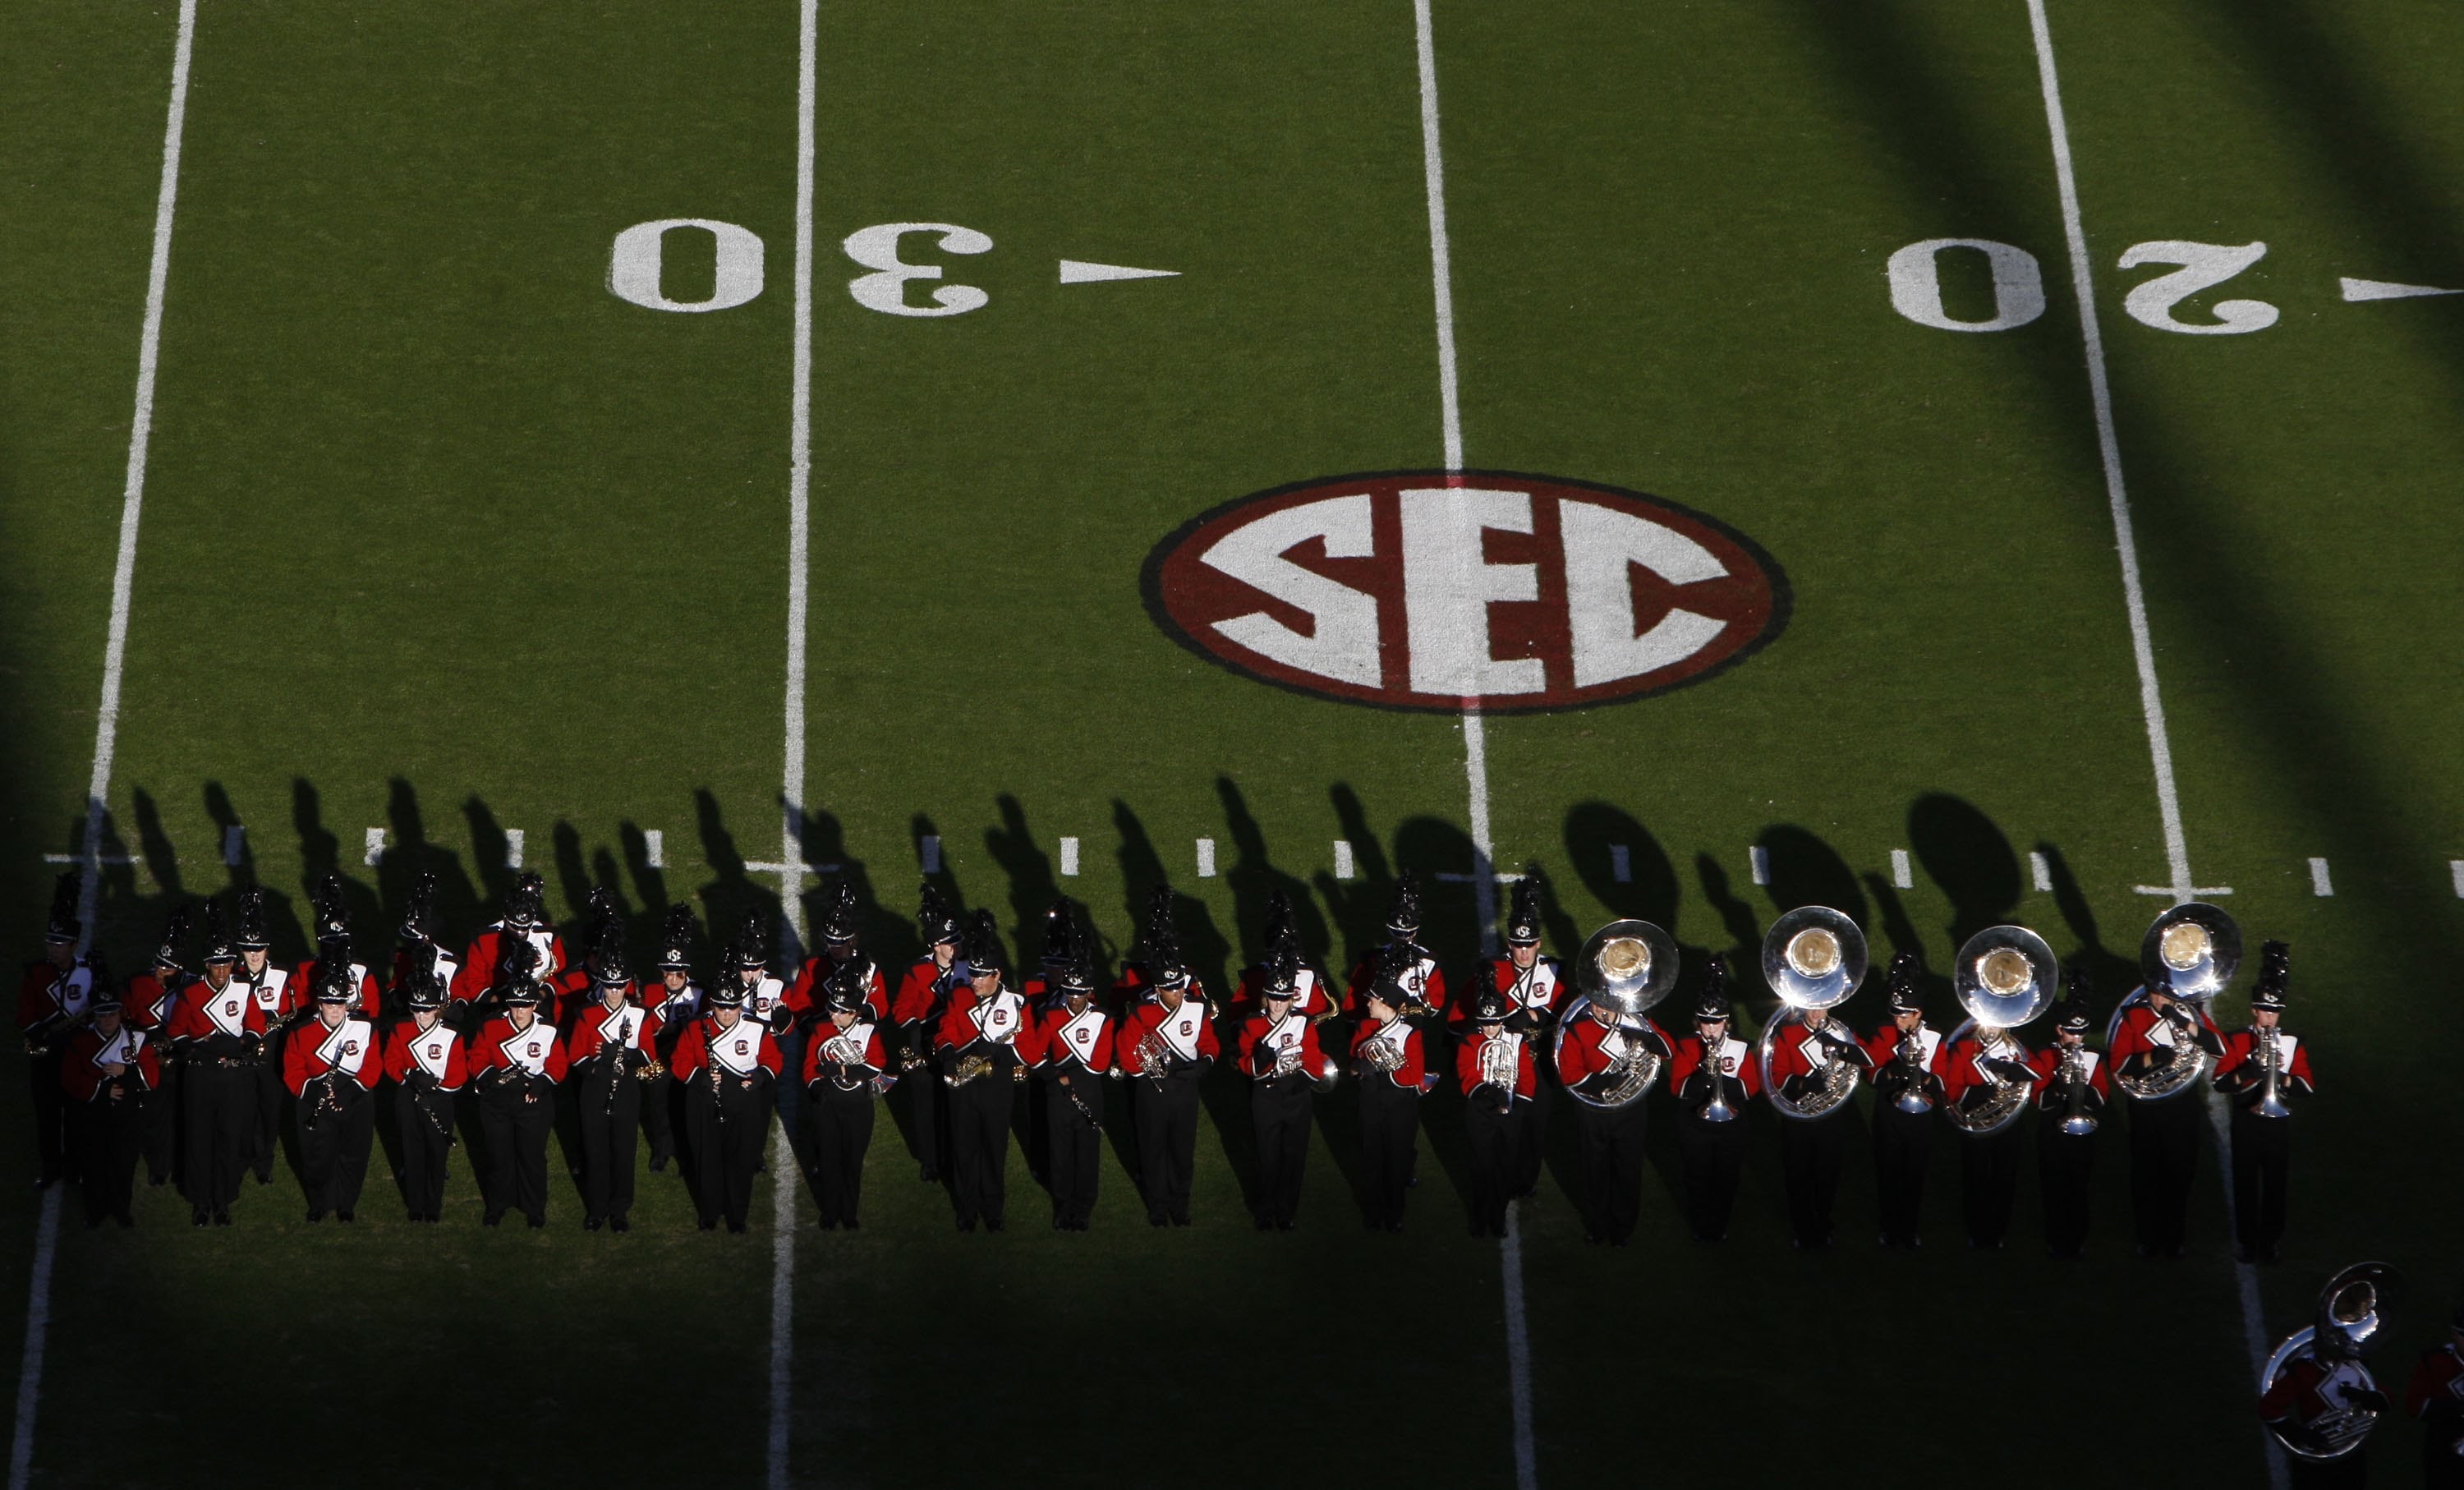 COLUMBIA, SC - NOVEMBER 14:  Overhead view of South Carolina Gamecocks marching band with SEC logo during the game against the Florida Gators at Williams-Brice Stadium on November 14, 2009 in Columbia, South Carolina. (Photo by Streeter Lecka/Getty Images